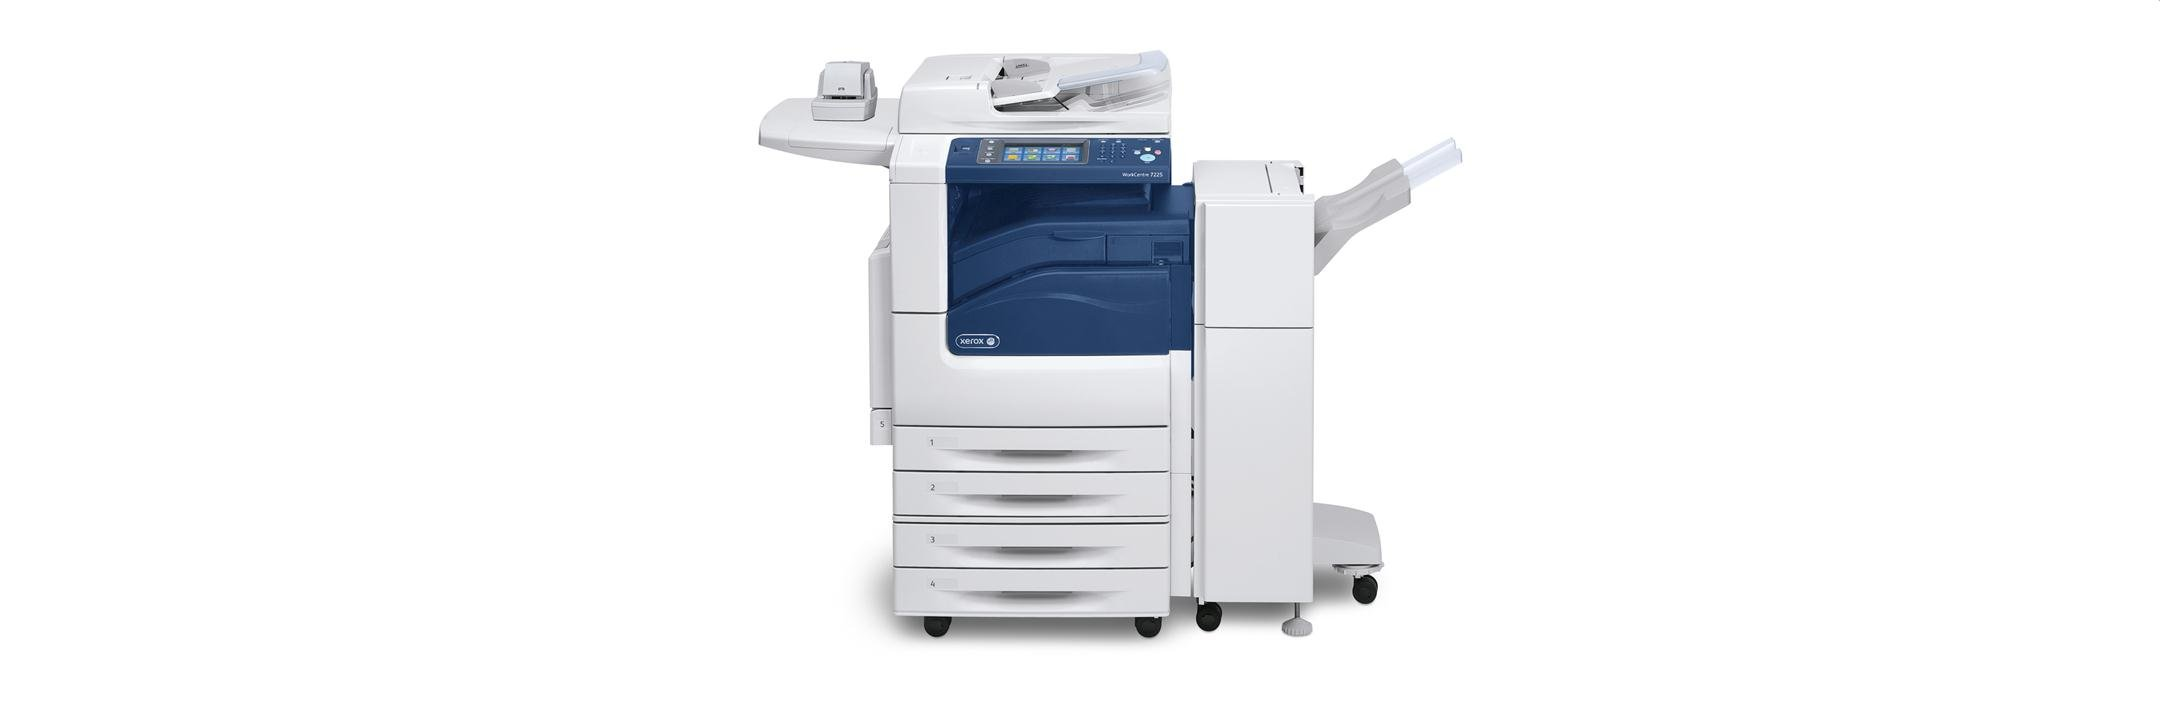 10 Reasons why the WorkCentre 7200 Series is Spectacular